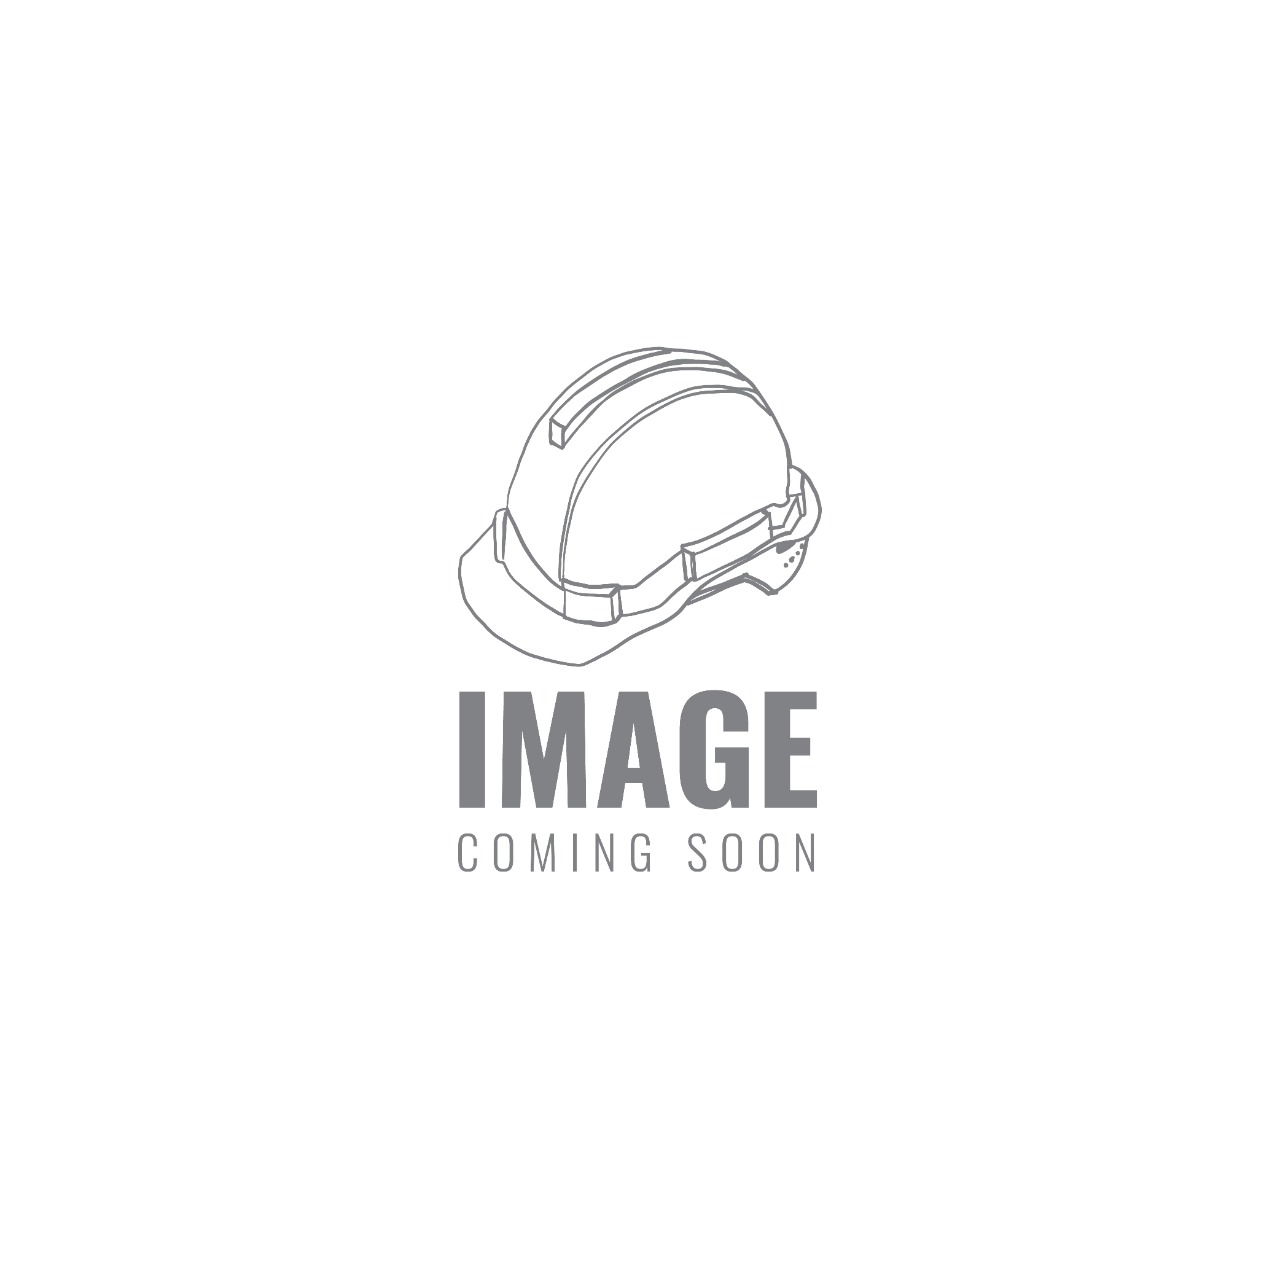 Eyewear Cleaning Station, Large Disposable